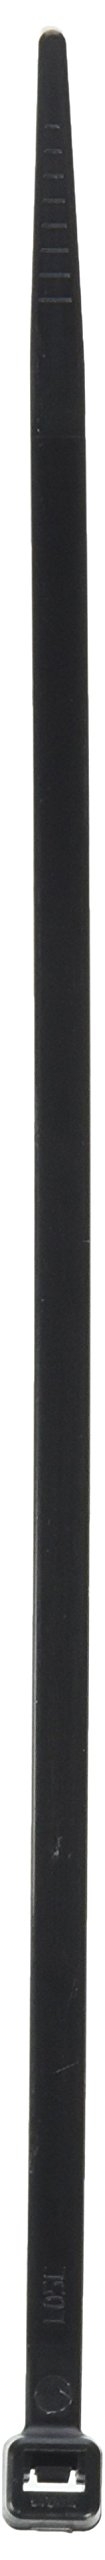 Pro Tie B8SD100 8-Inch Standard Duty Cable Tie, UV Black Nylon, 100-Pack by Pro Tie